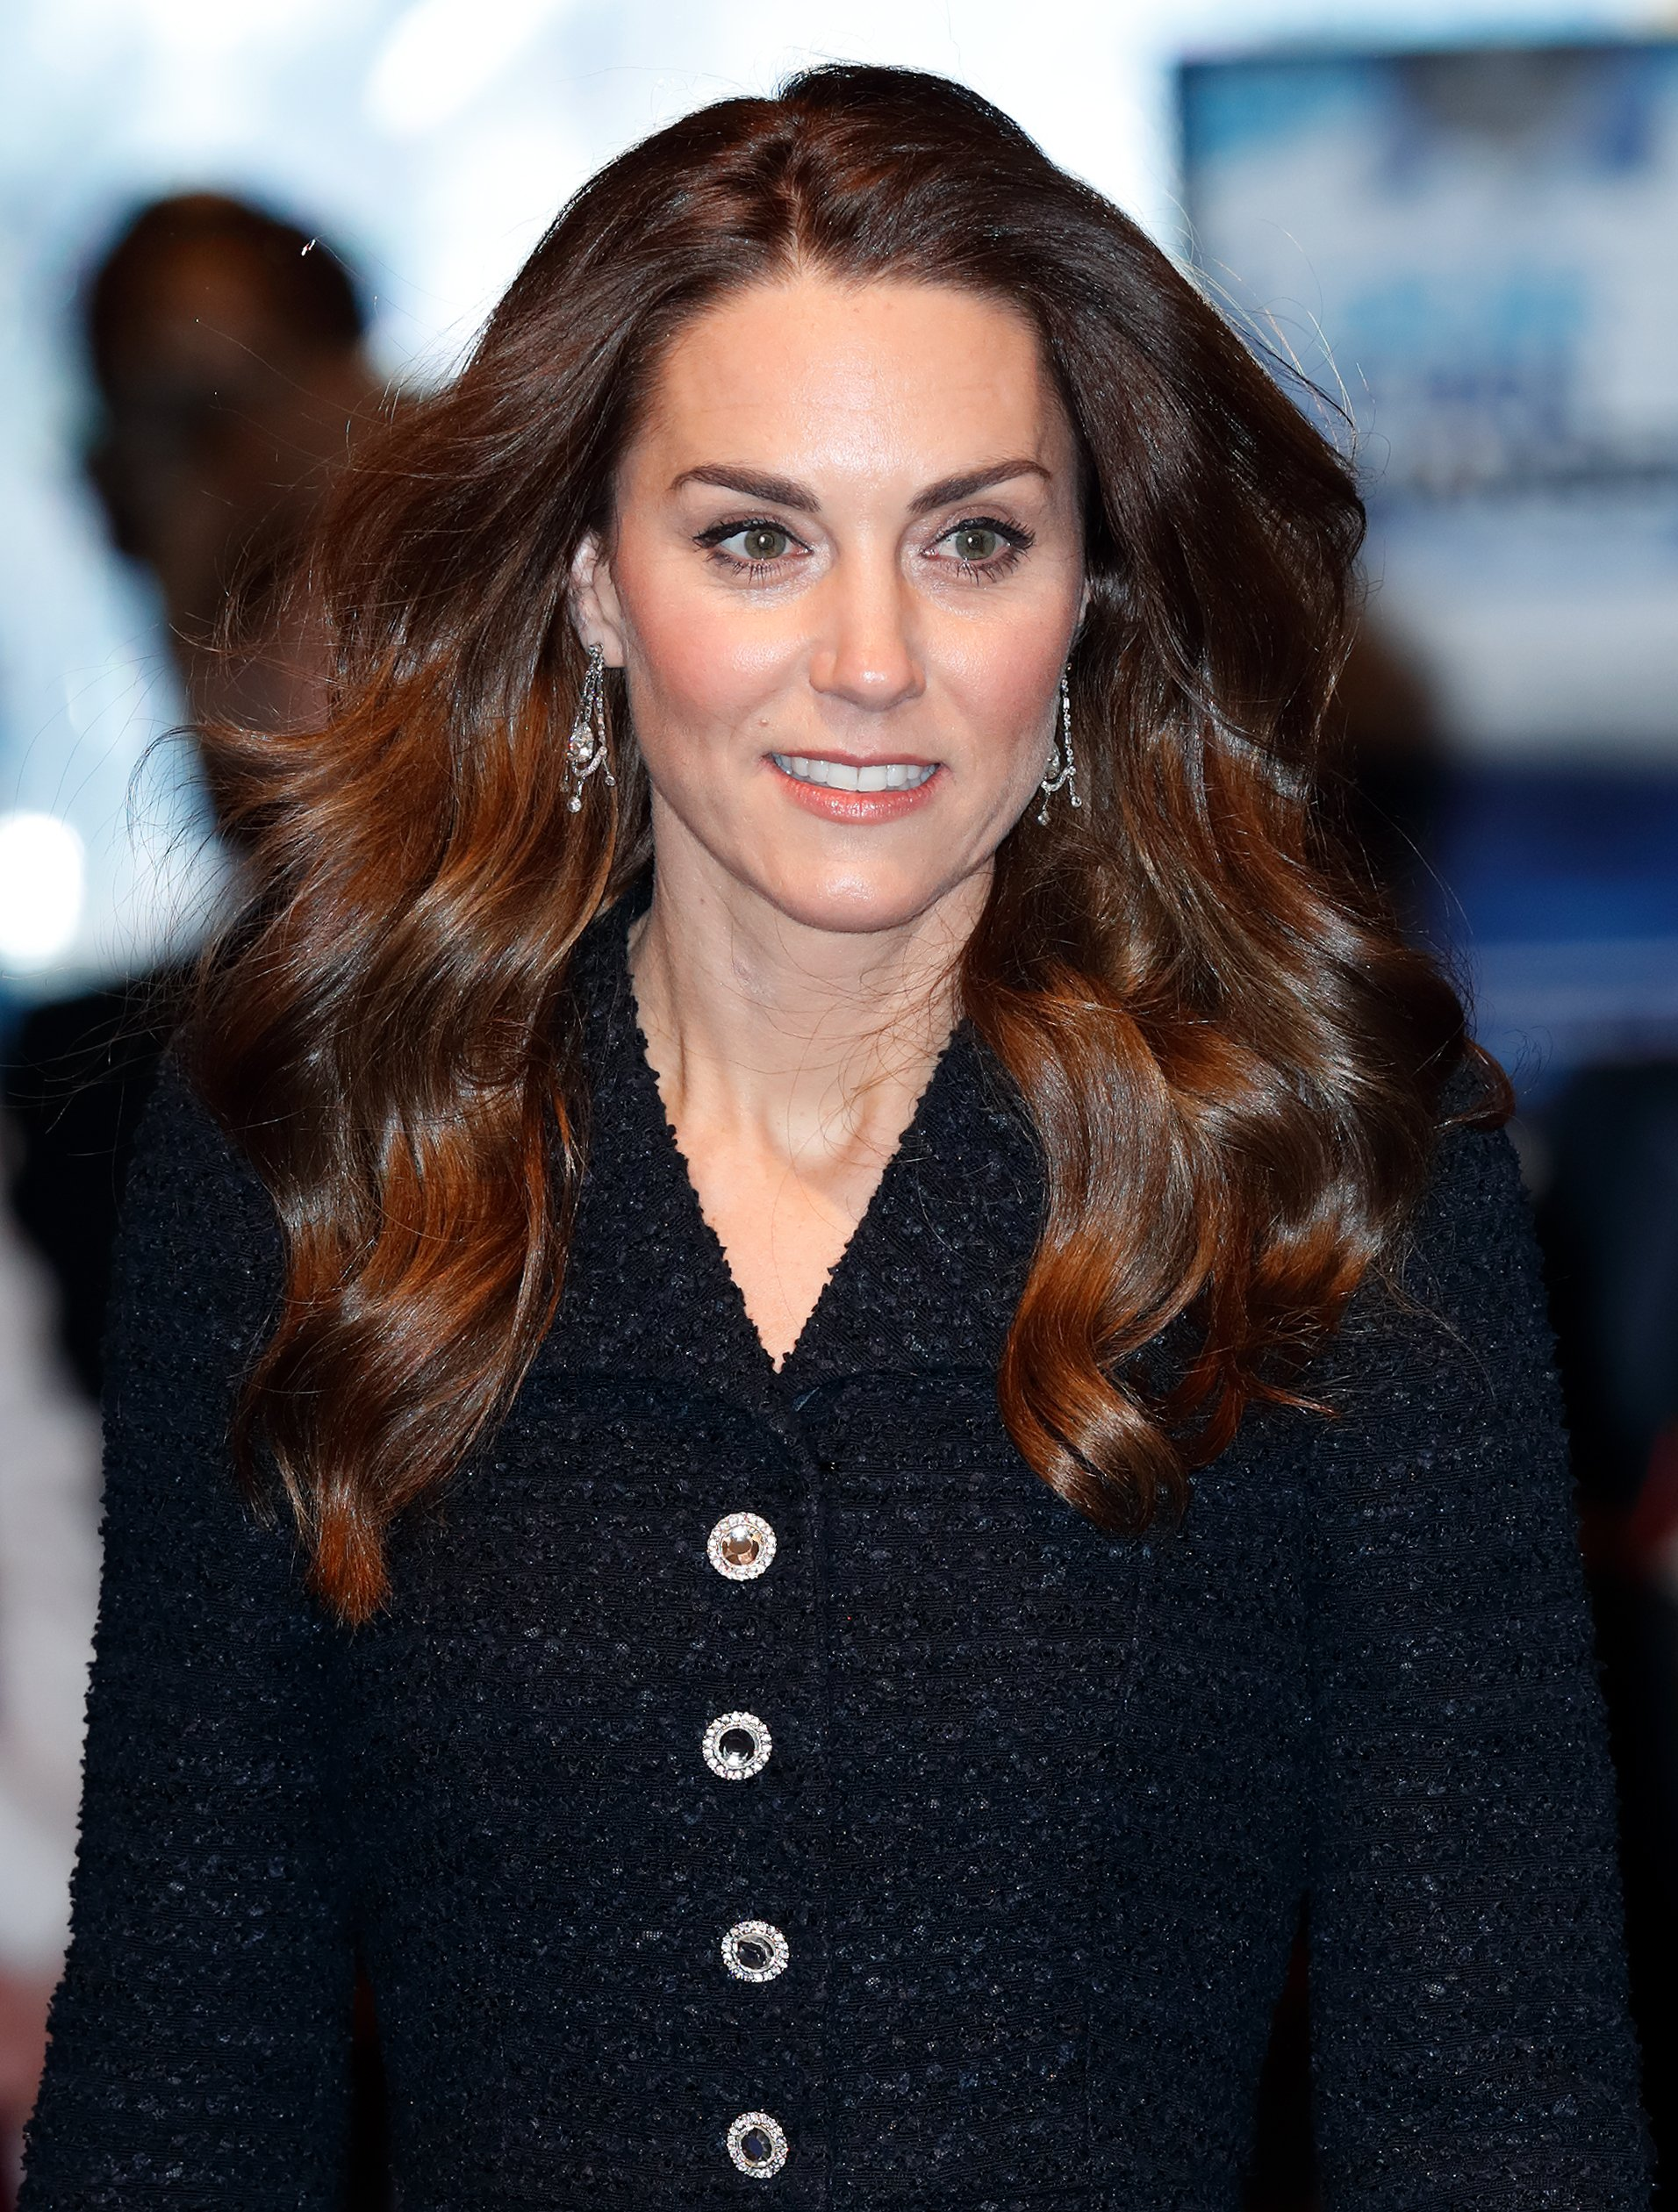 """Kate Middleton attends a charity performance of """"Dear Evan Hansen"""" in aid of The Royal Foundation on February 25, 2020 in London, England.   Source: Getty Images."""